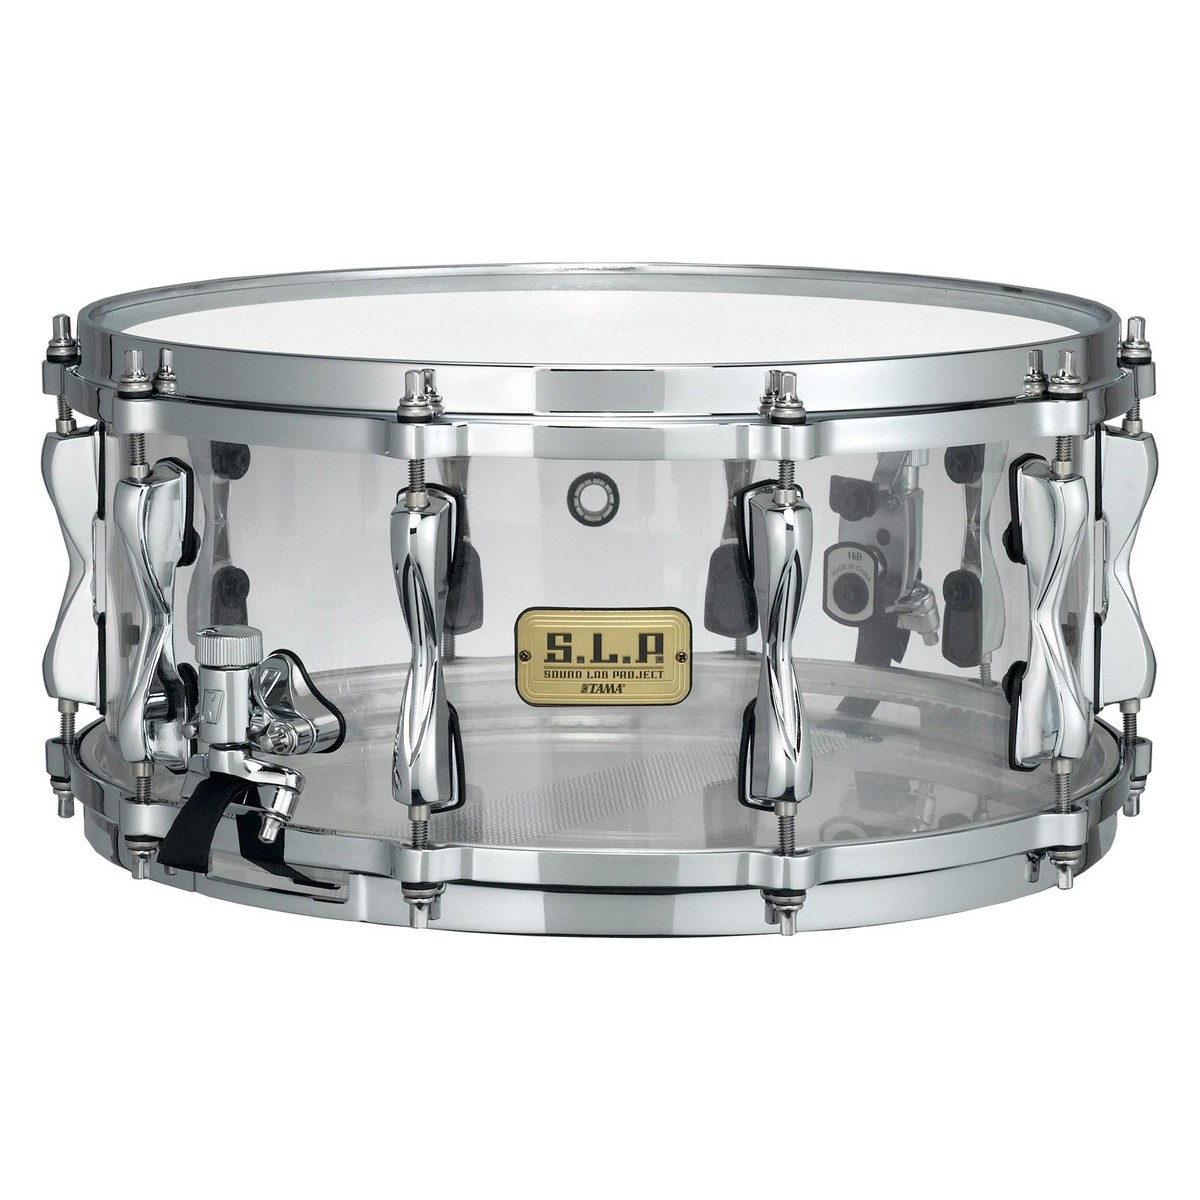 Image of Tama SLP Mirage Acrylic 14 x 6.5 Snare Drum Crystal Ice